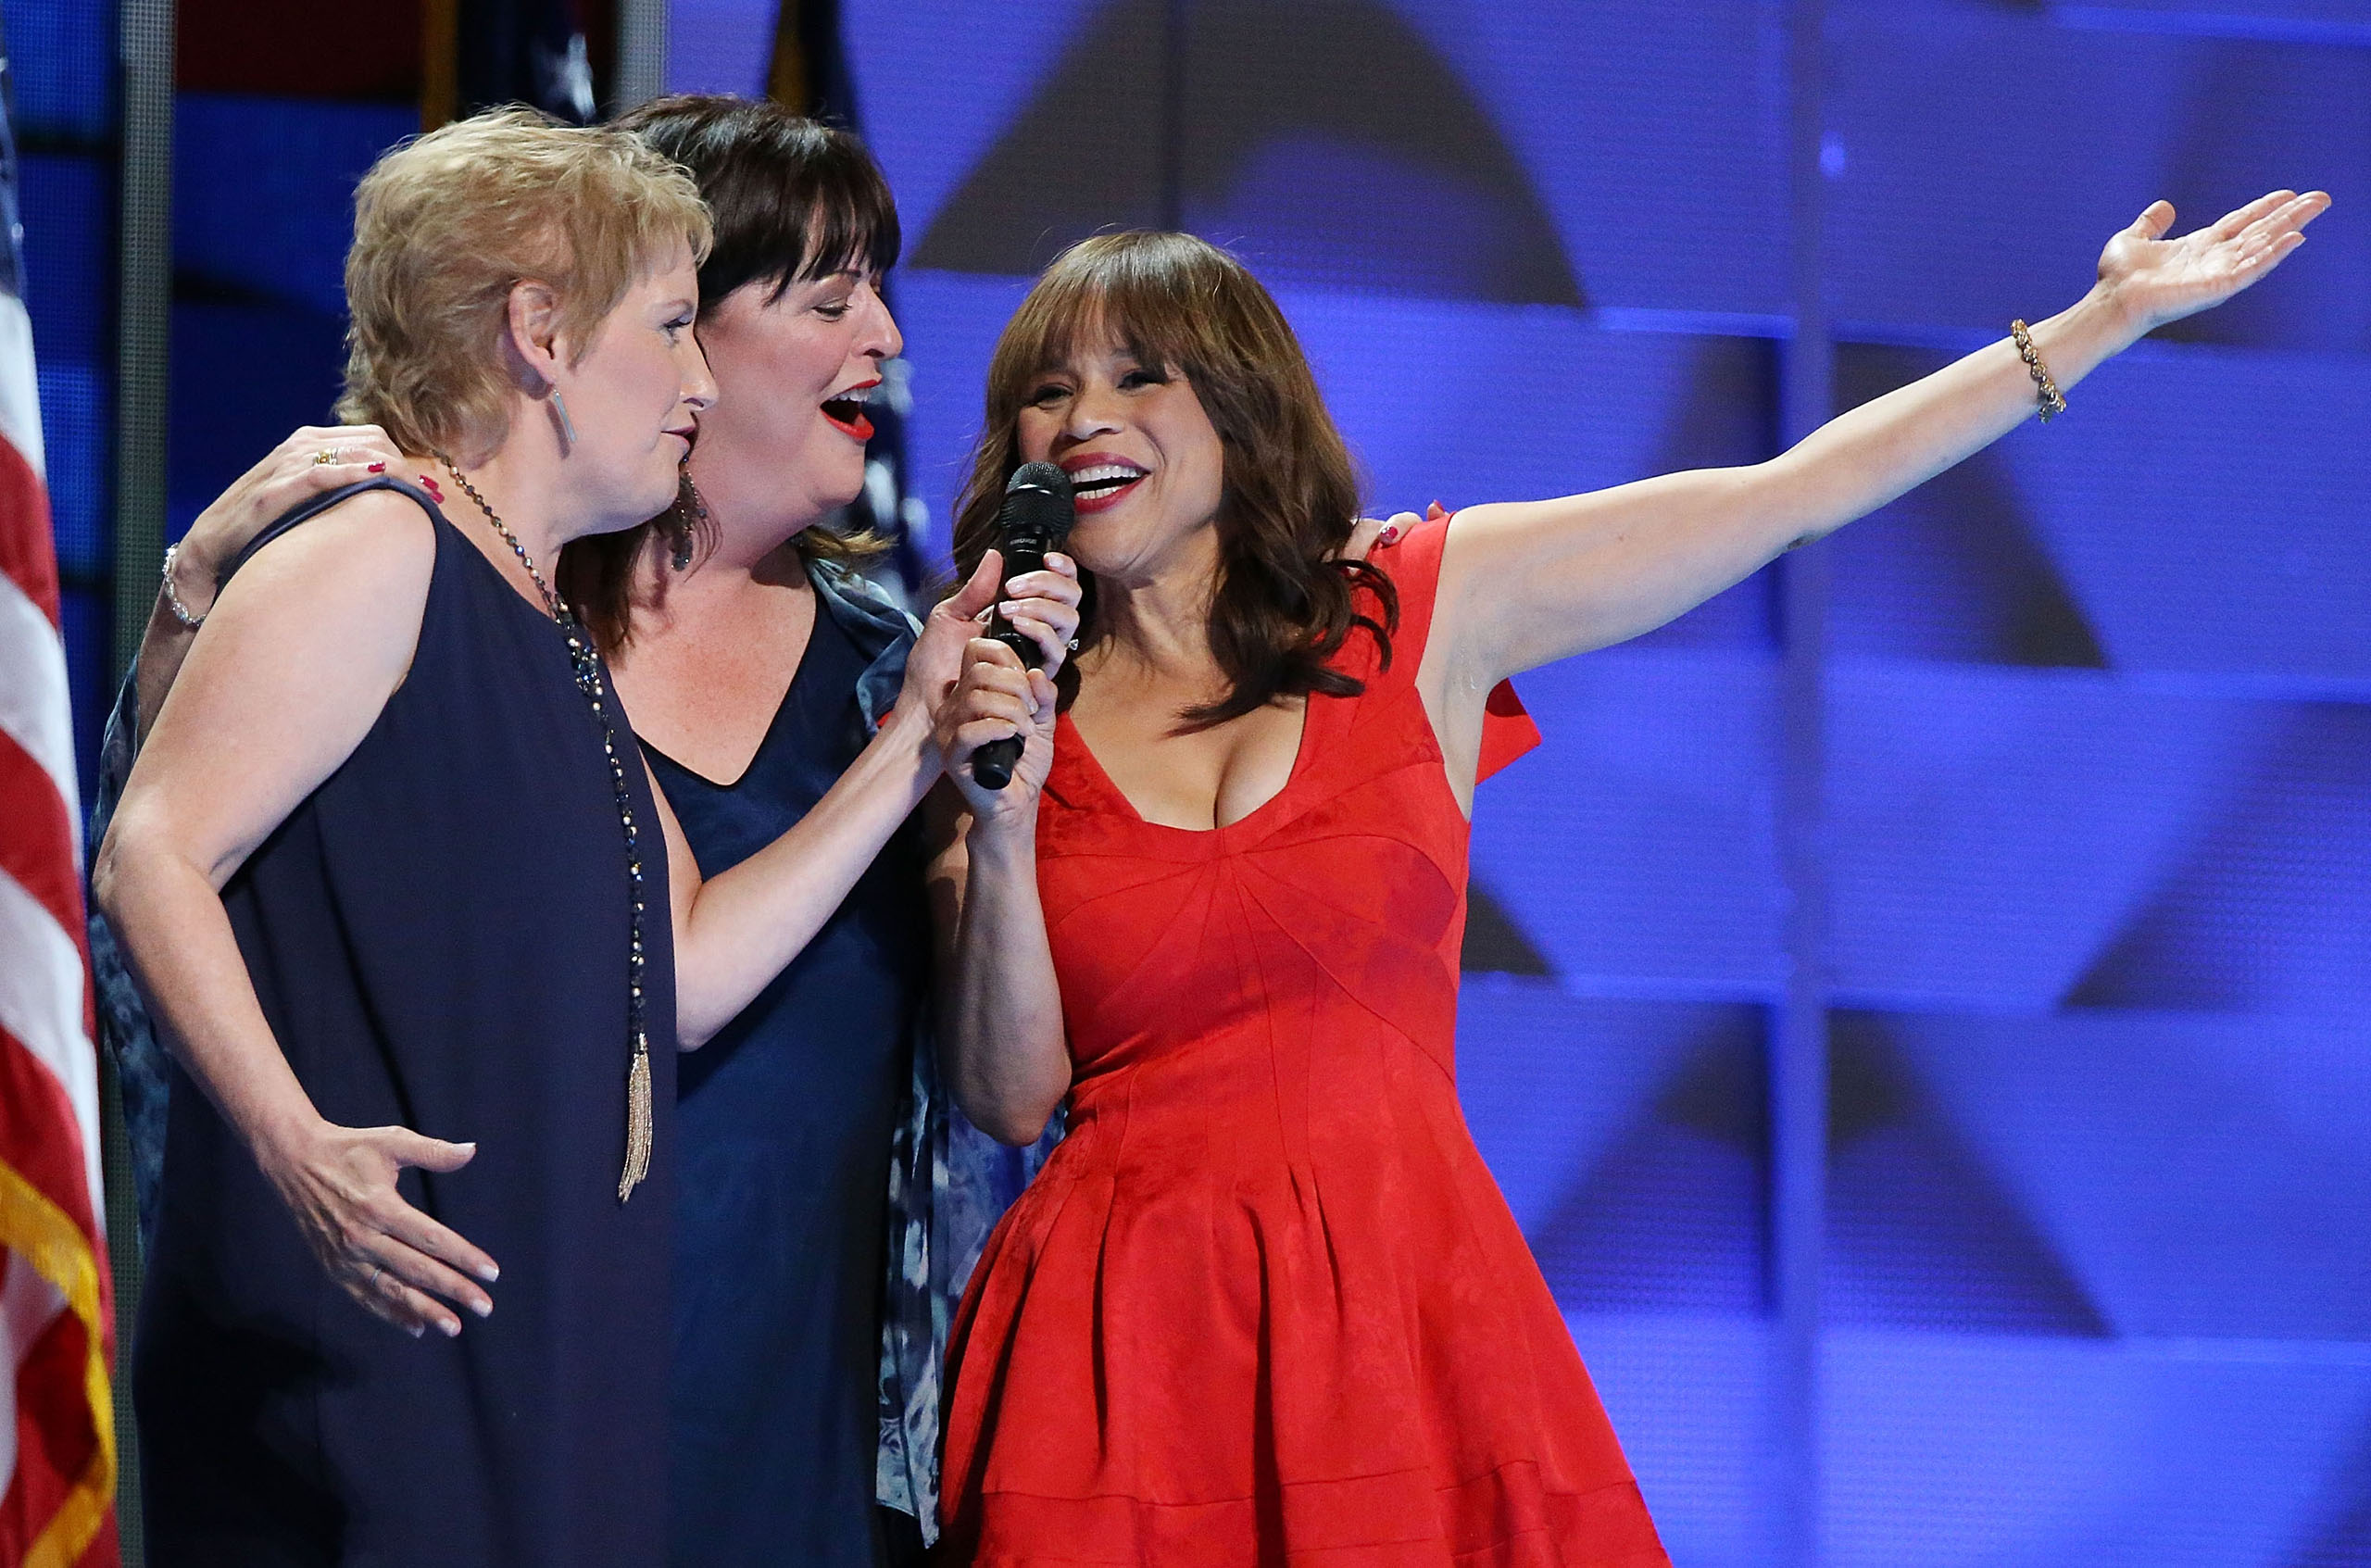 Rosie Perez joins the Stars of Broadway to perform 'What the World Needs Now' honoring those killed in the Pulse nightclub shooting in Orlando on the third day of the Democratic National Convention at the Wells Fargo Center in Philadelphia, Pennsylvania, on July 27, 2016.